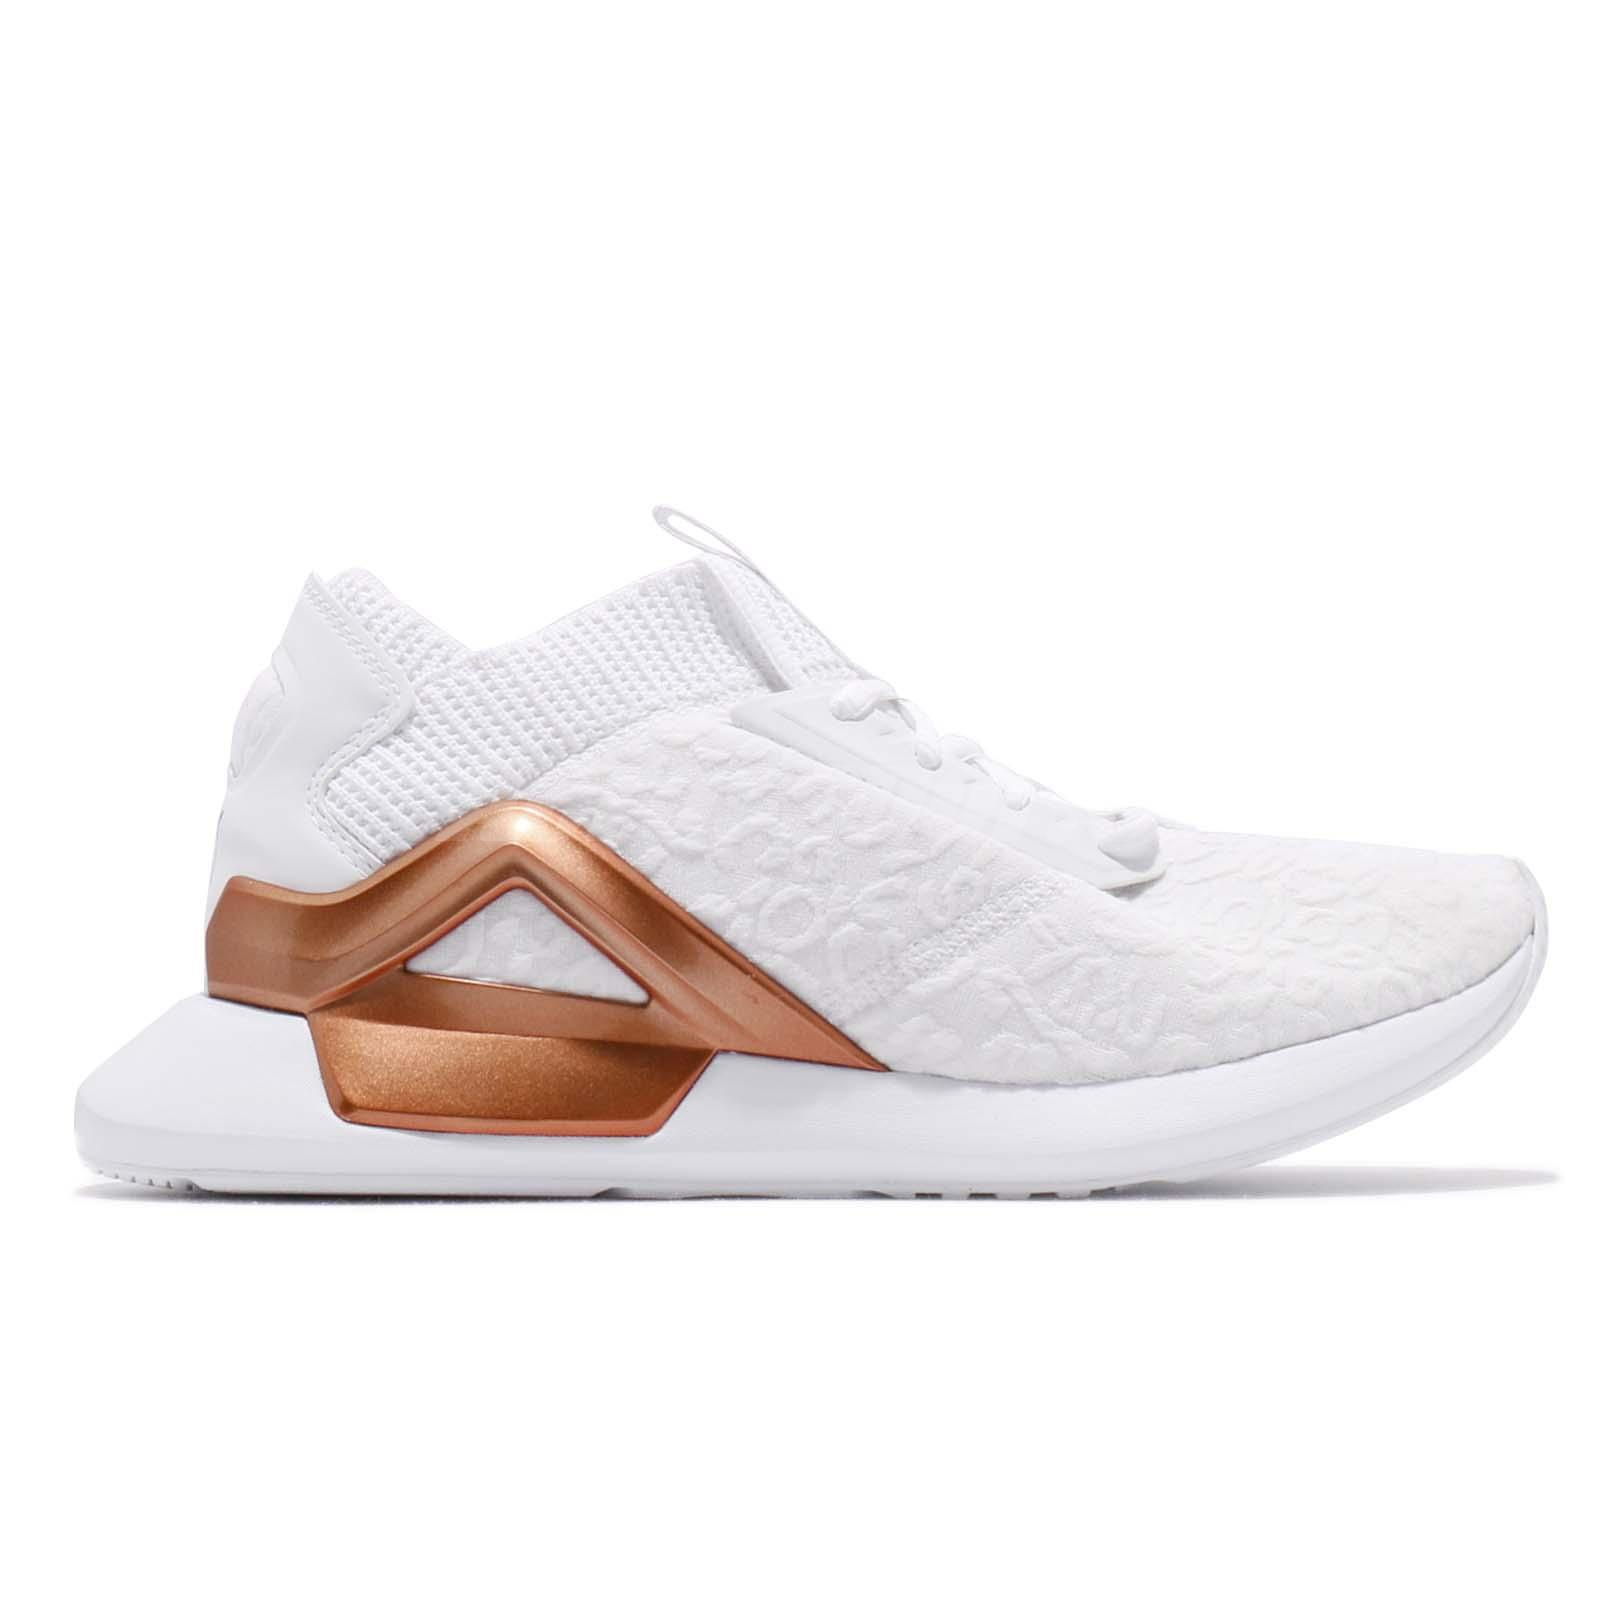 a232d81446eb ... PUMA WHITE-ROSE GOLD. Made In  Vietnam. Condition  Brand New With Box